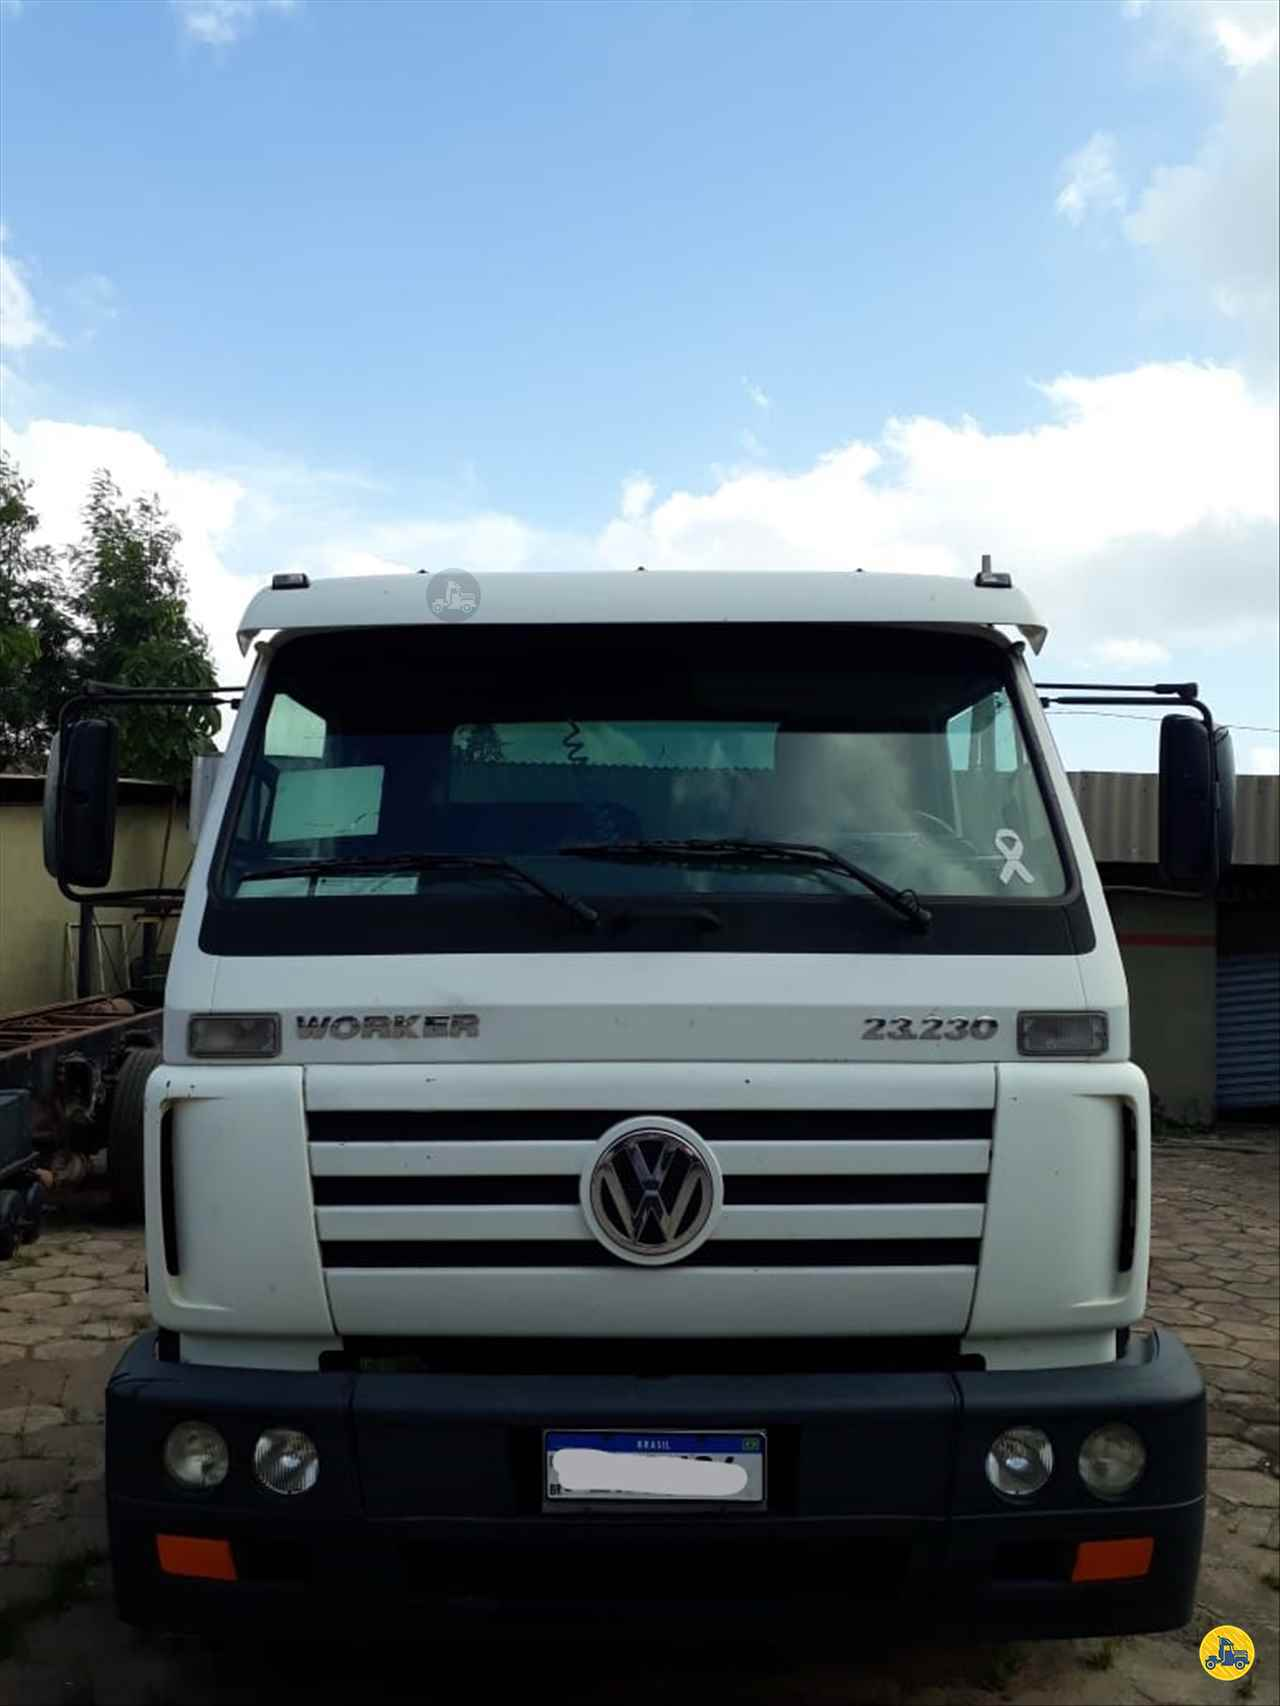 CAMINHAO VOLKSWAGEN VW 23230 Chassis Truck 6x2 Monaco Diesel - VW ANANINDEUA PARÁ PA